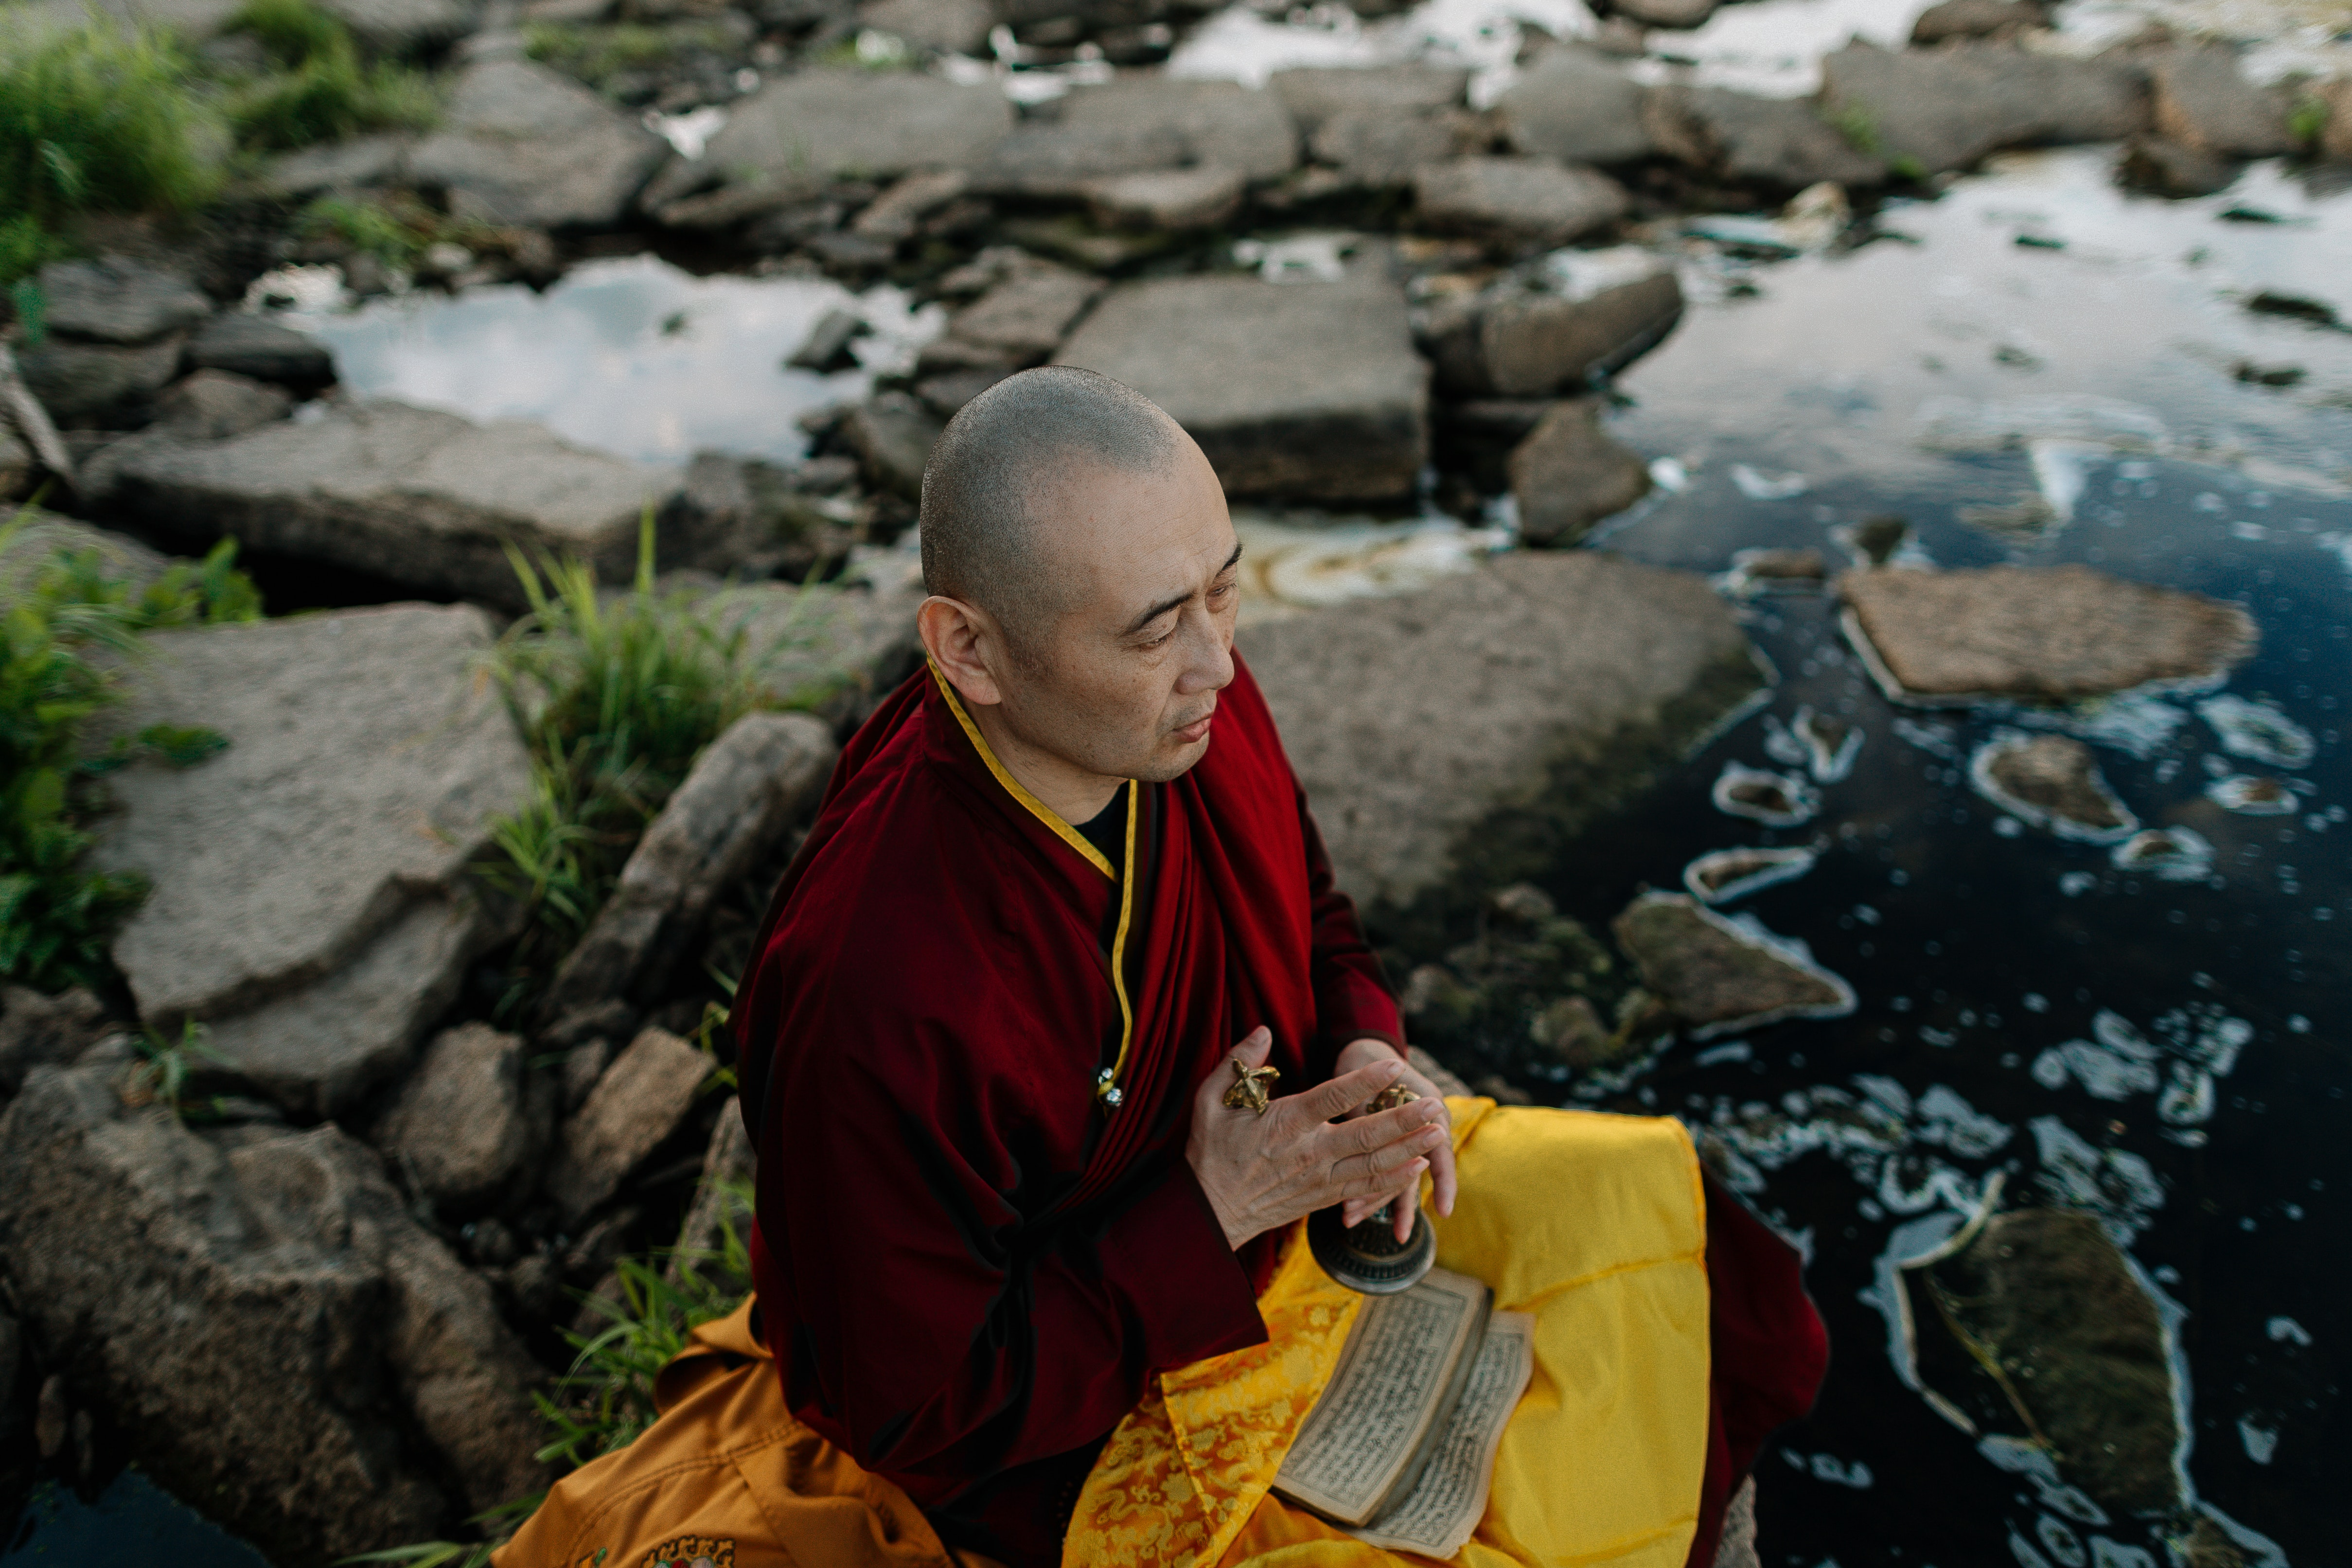 Monks in India